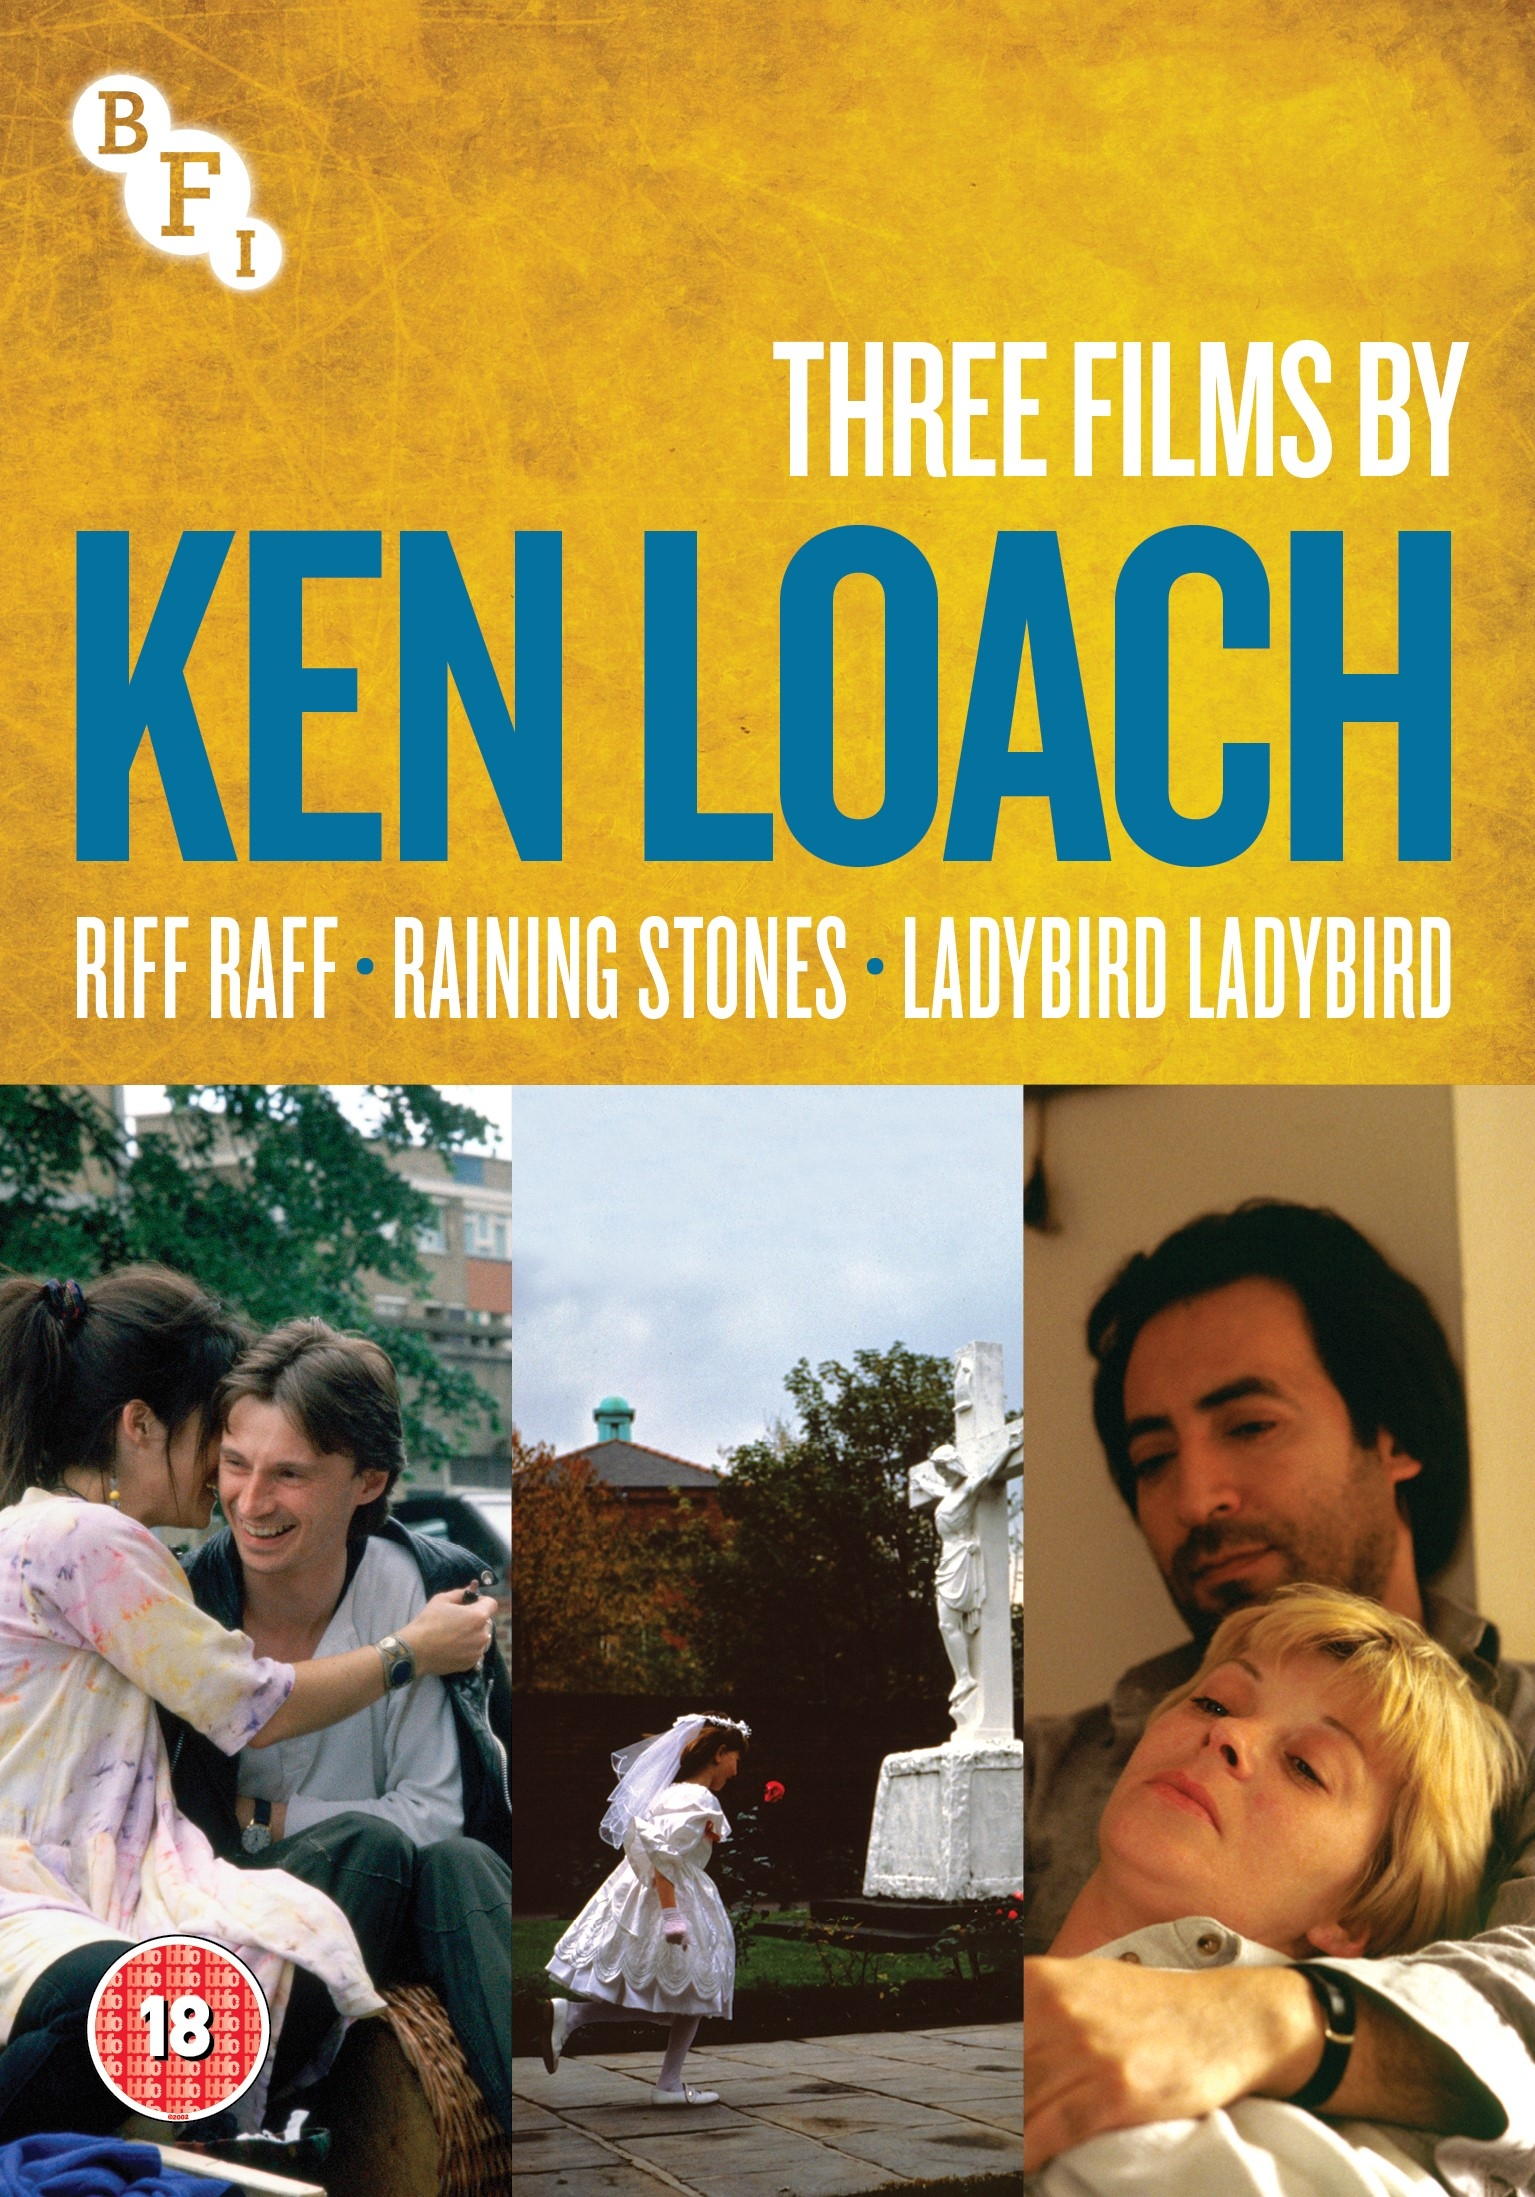 Buy Three films by Ken Loach: Riff Raff, Raining Stones, Ladybird Ladybird (DVD)